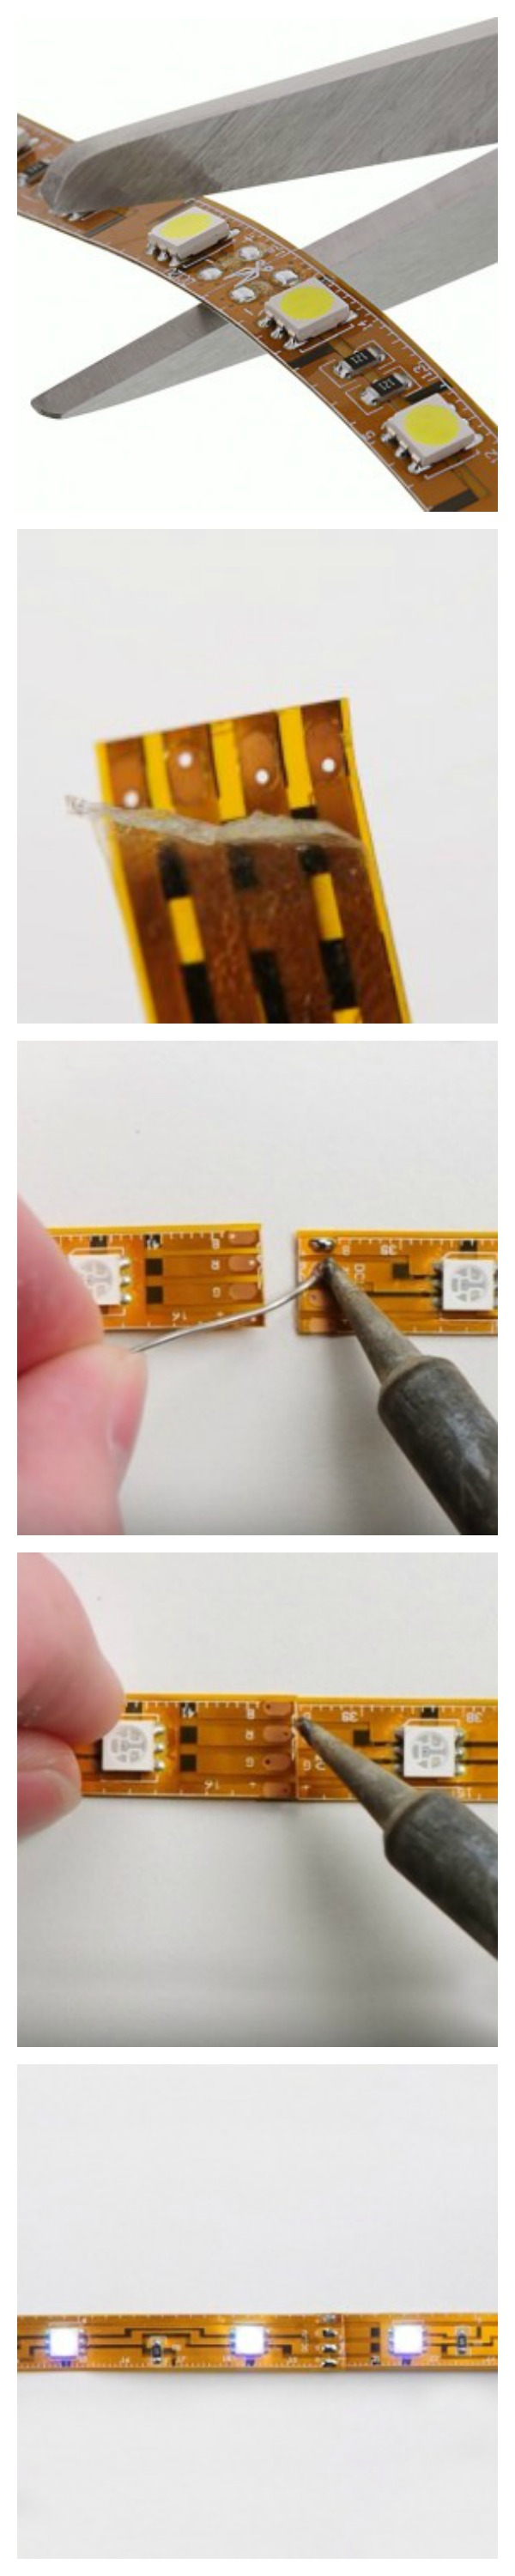 How to soldering led strip lights regardless of bends twists how to soldering led strip lights regardless of bends twists or turns led light strips can be modified to fit any application mozeypictures Image collections